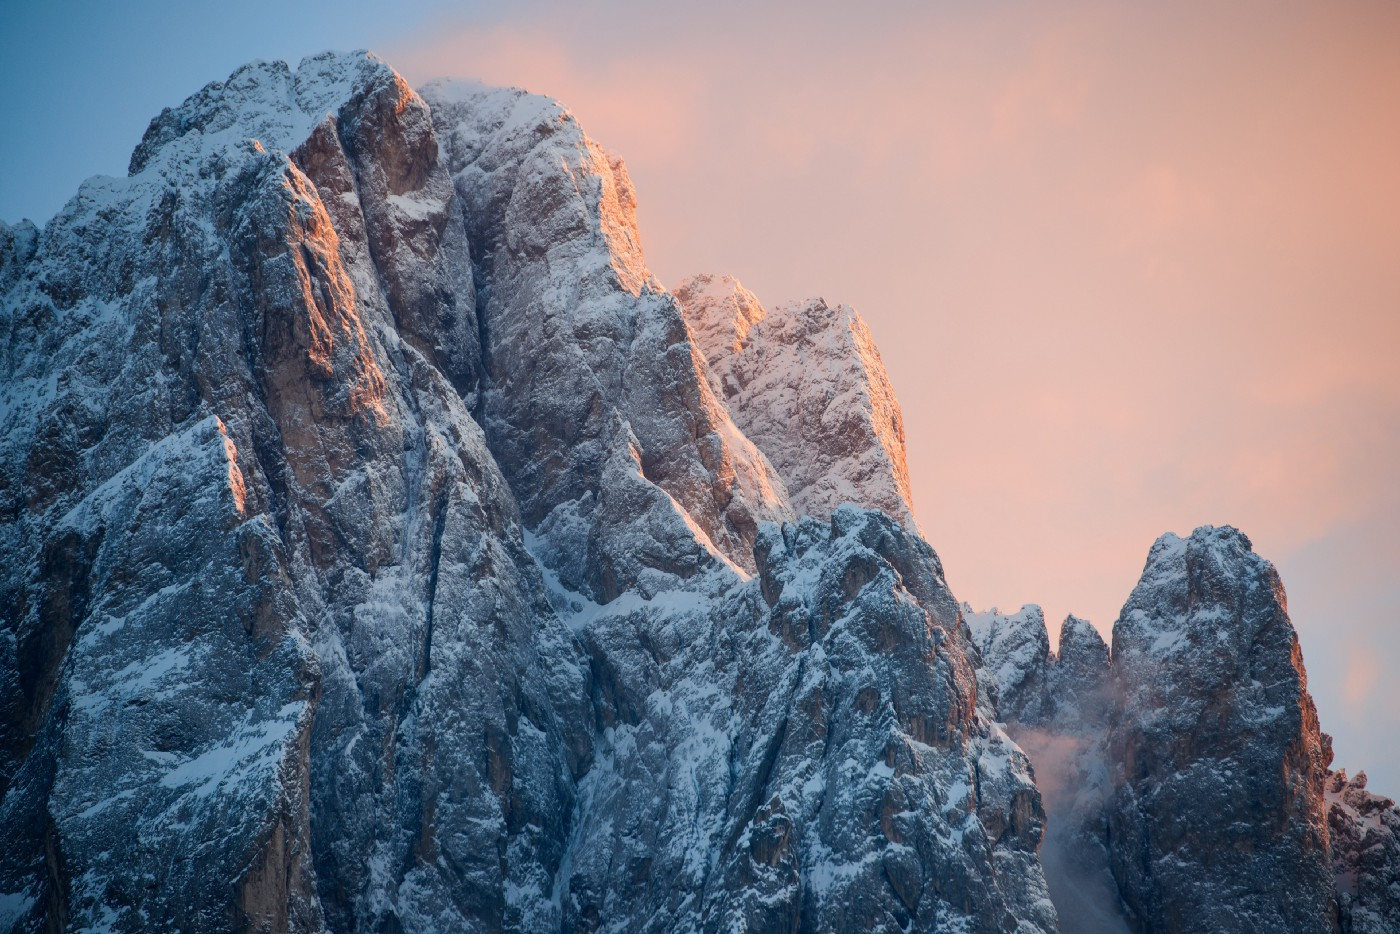 a snowy mountain peak against a background of a rosy sky